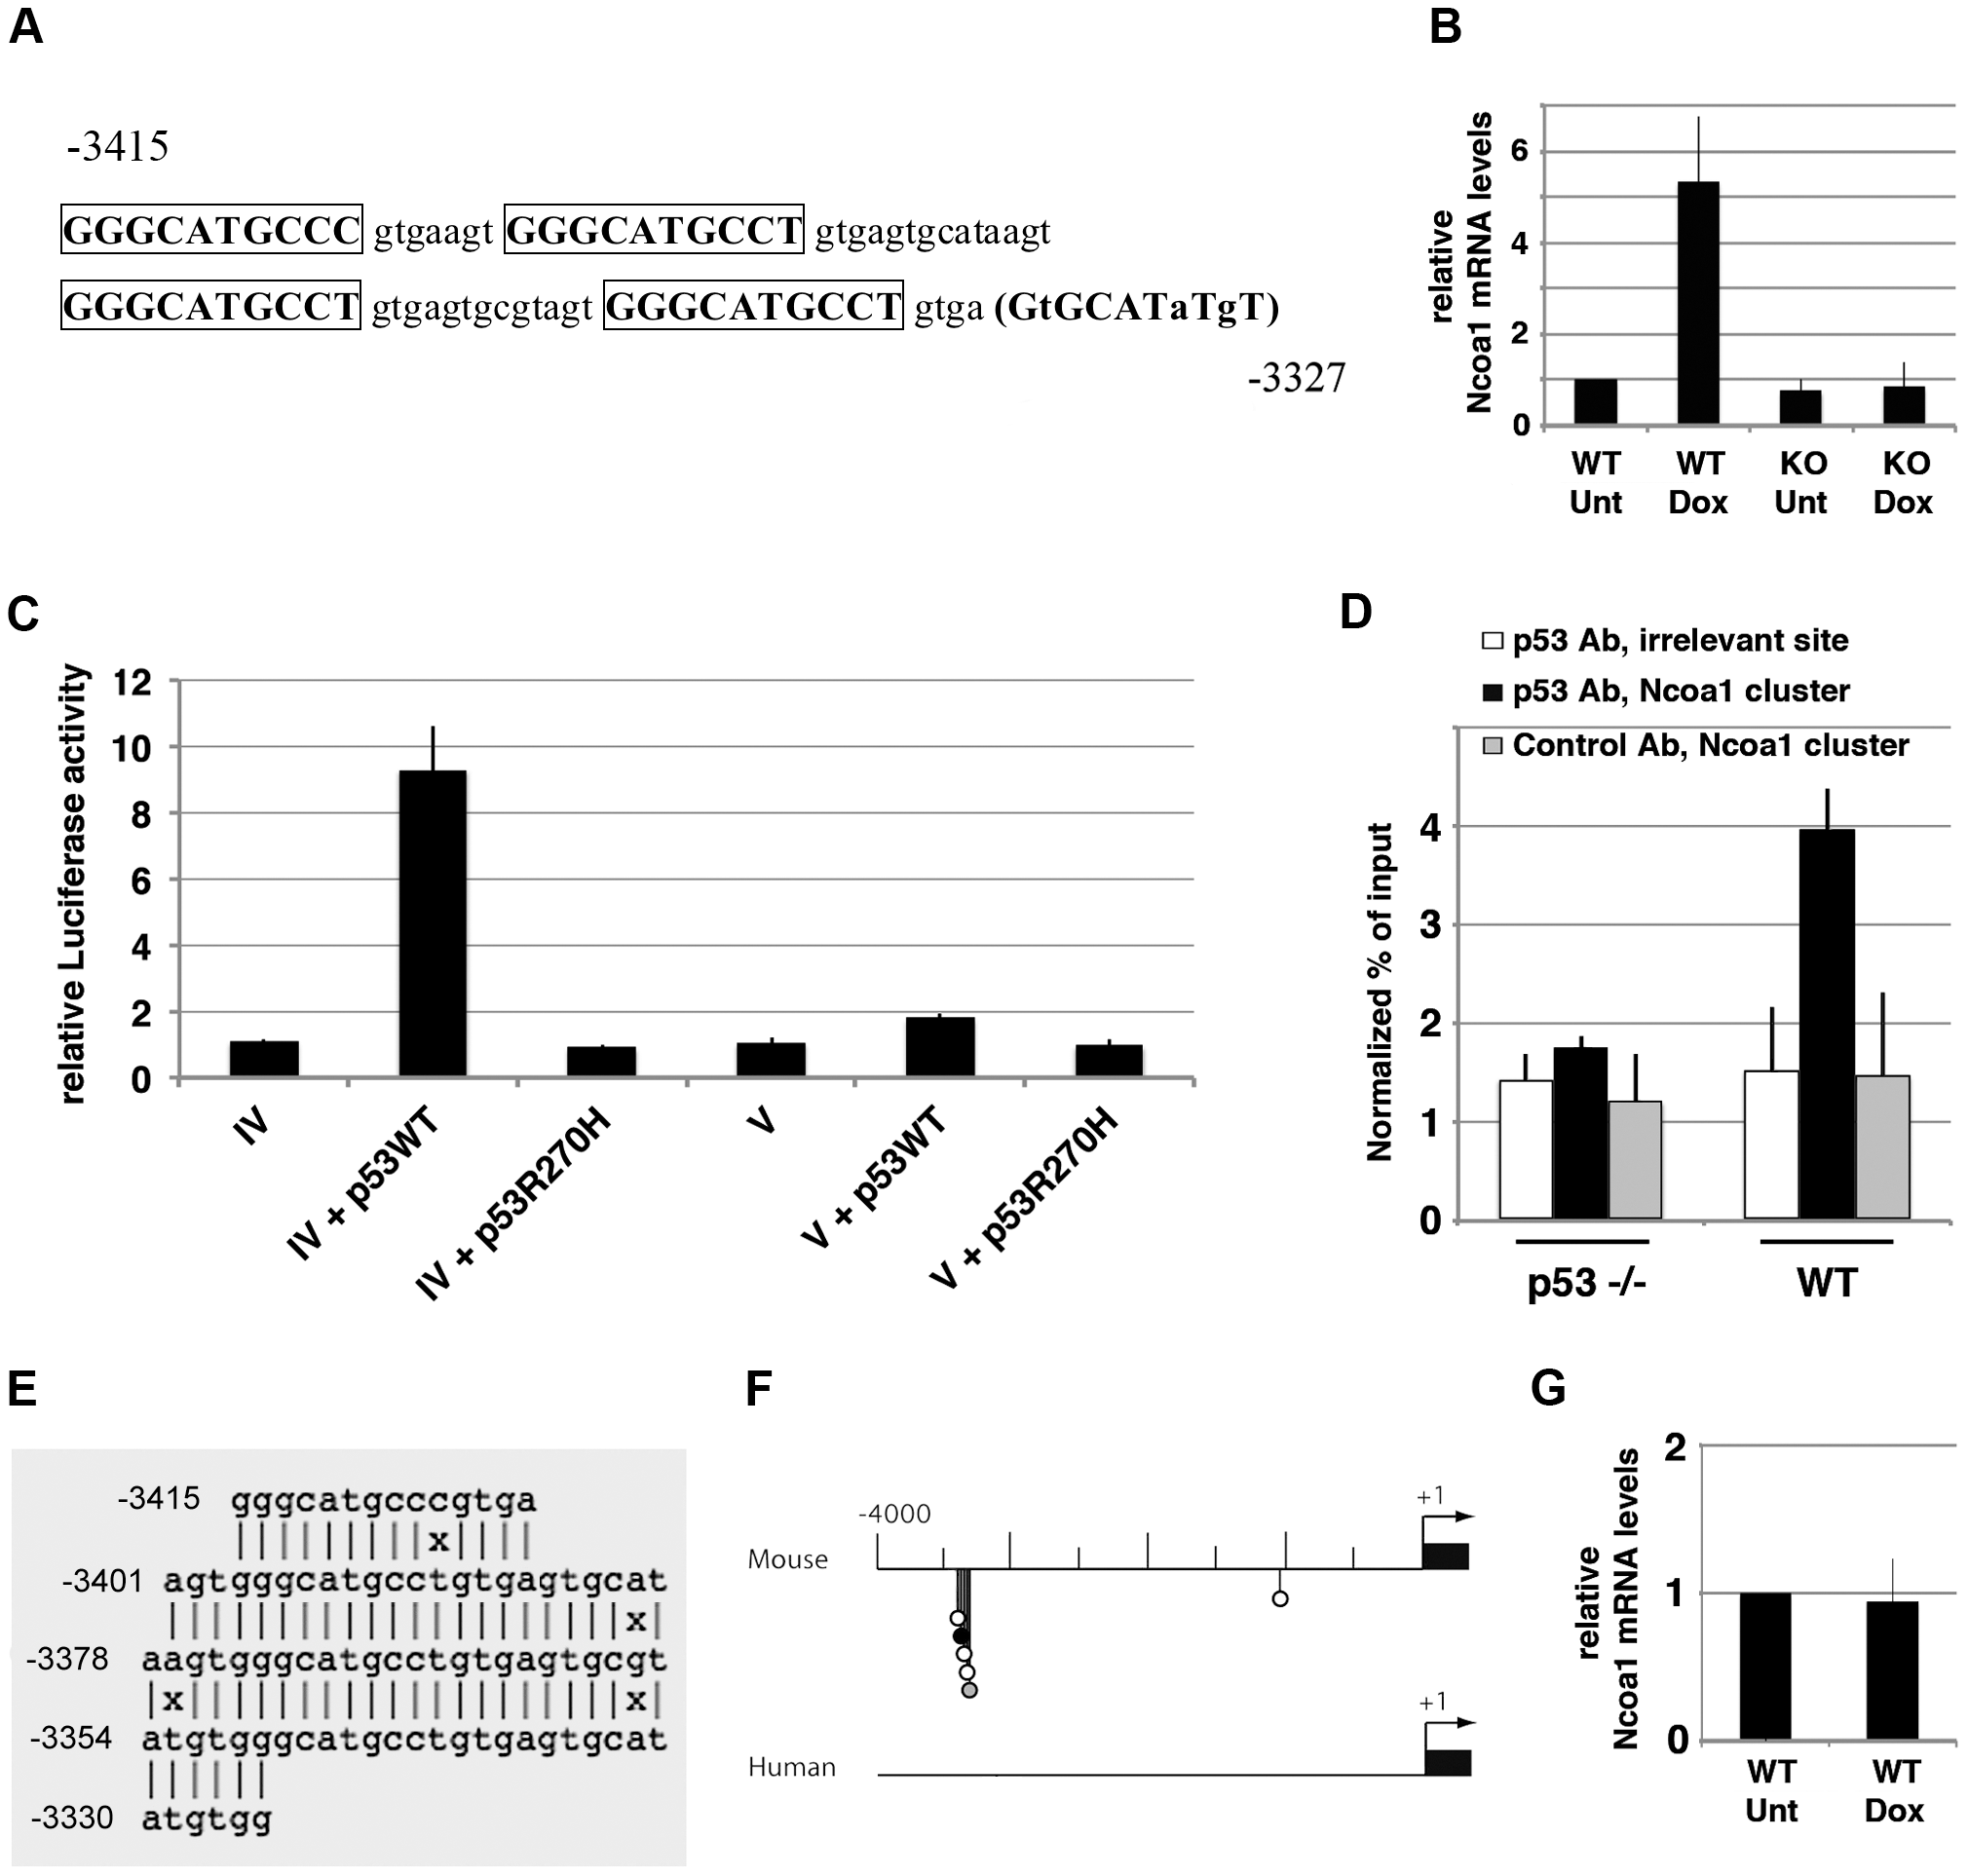 Transactivation of murine <i>Ncoa1</i> by p53 relies on a cluster of p53 half-sites.